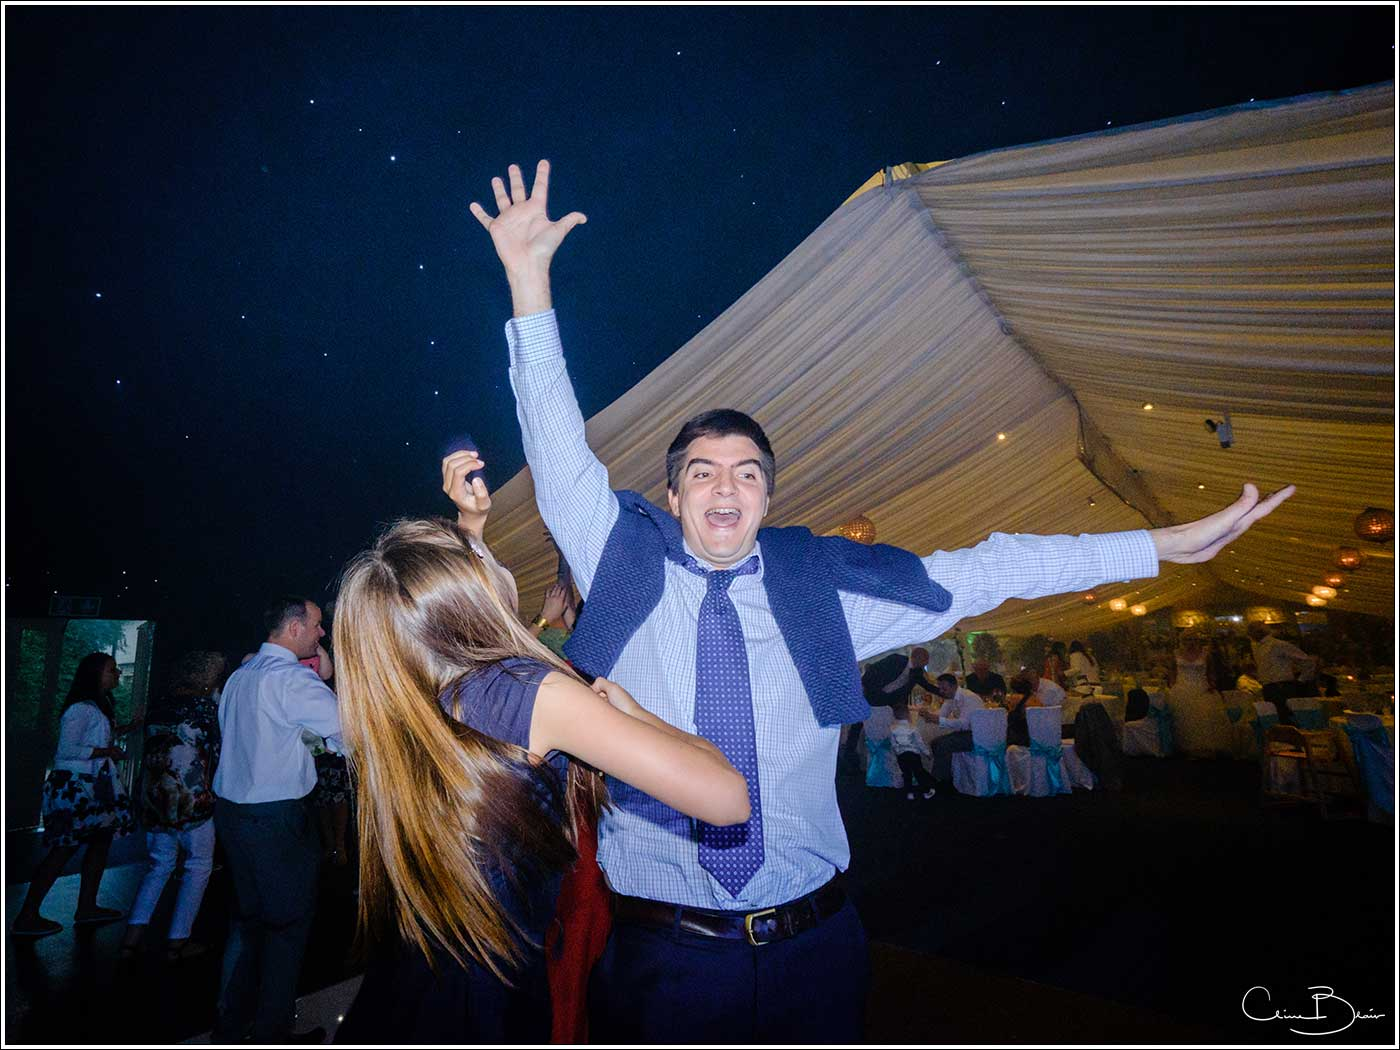 Coombe Abbey wedding photography showing man waving his arms on the dance floor